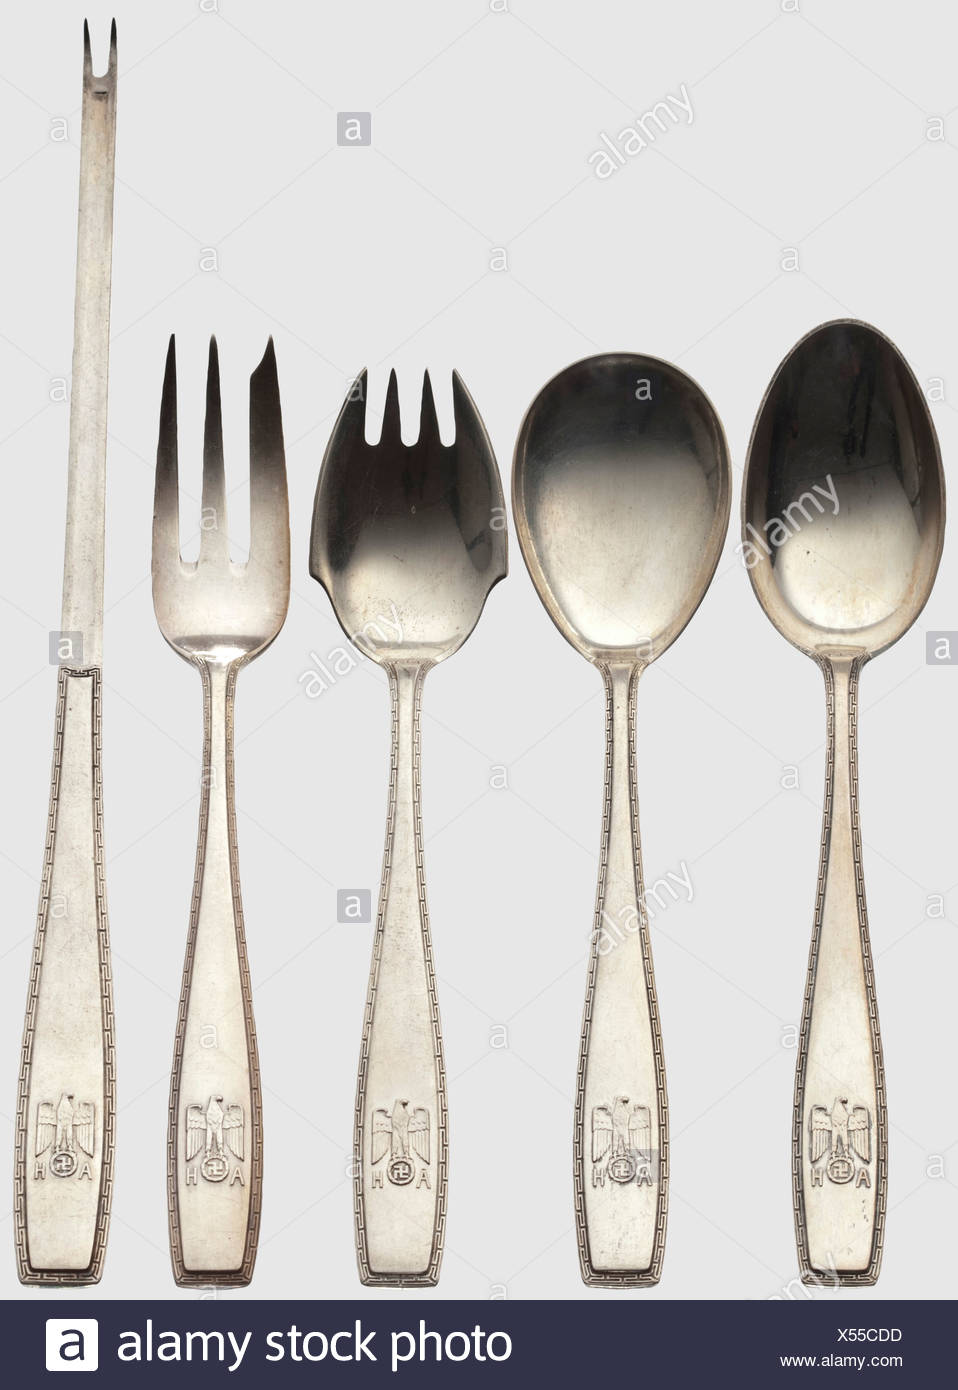 Adolf Hitler, five pieces from his personal silverware Lobster cracker, dessert and sugar spoons as well as cake and fruit forks. The grips each with a continous band of meander surrounding a national eagle in relief above the monogram 'AH'. Hallmarks '800' with a crescent moon and crown. Lengths between 14 and 20 cm, total weight 139 g. The lobster cracker in particular of the utmost rarity, historic, historical, 1930s, 1930s, 20th century, NS, National Socialism, Nazism, Third Reich, German Reich, Germany, German, National Socialist, Nazi, Nazi period, fascis, Additional-Rights-Clearences-NA - Stock Image